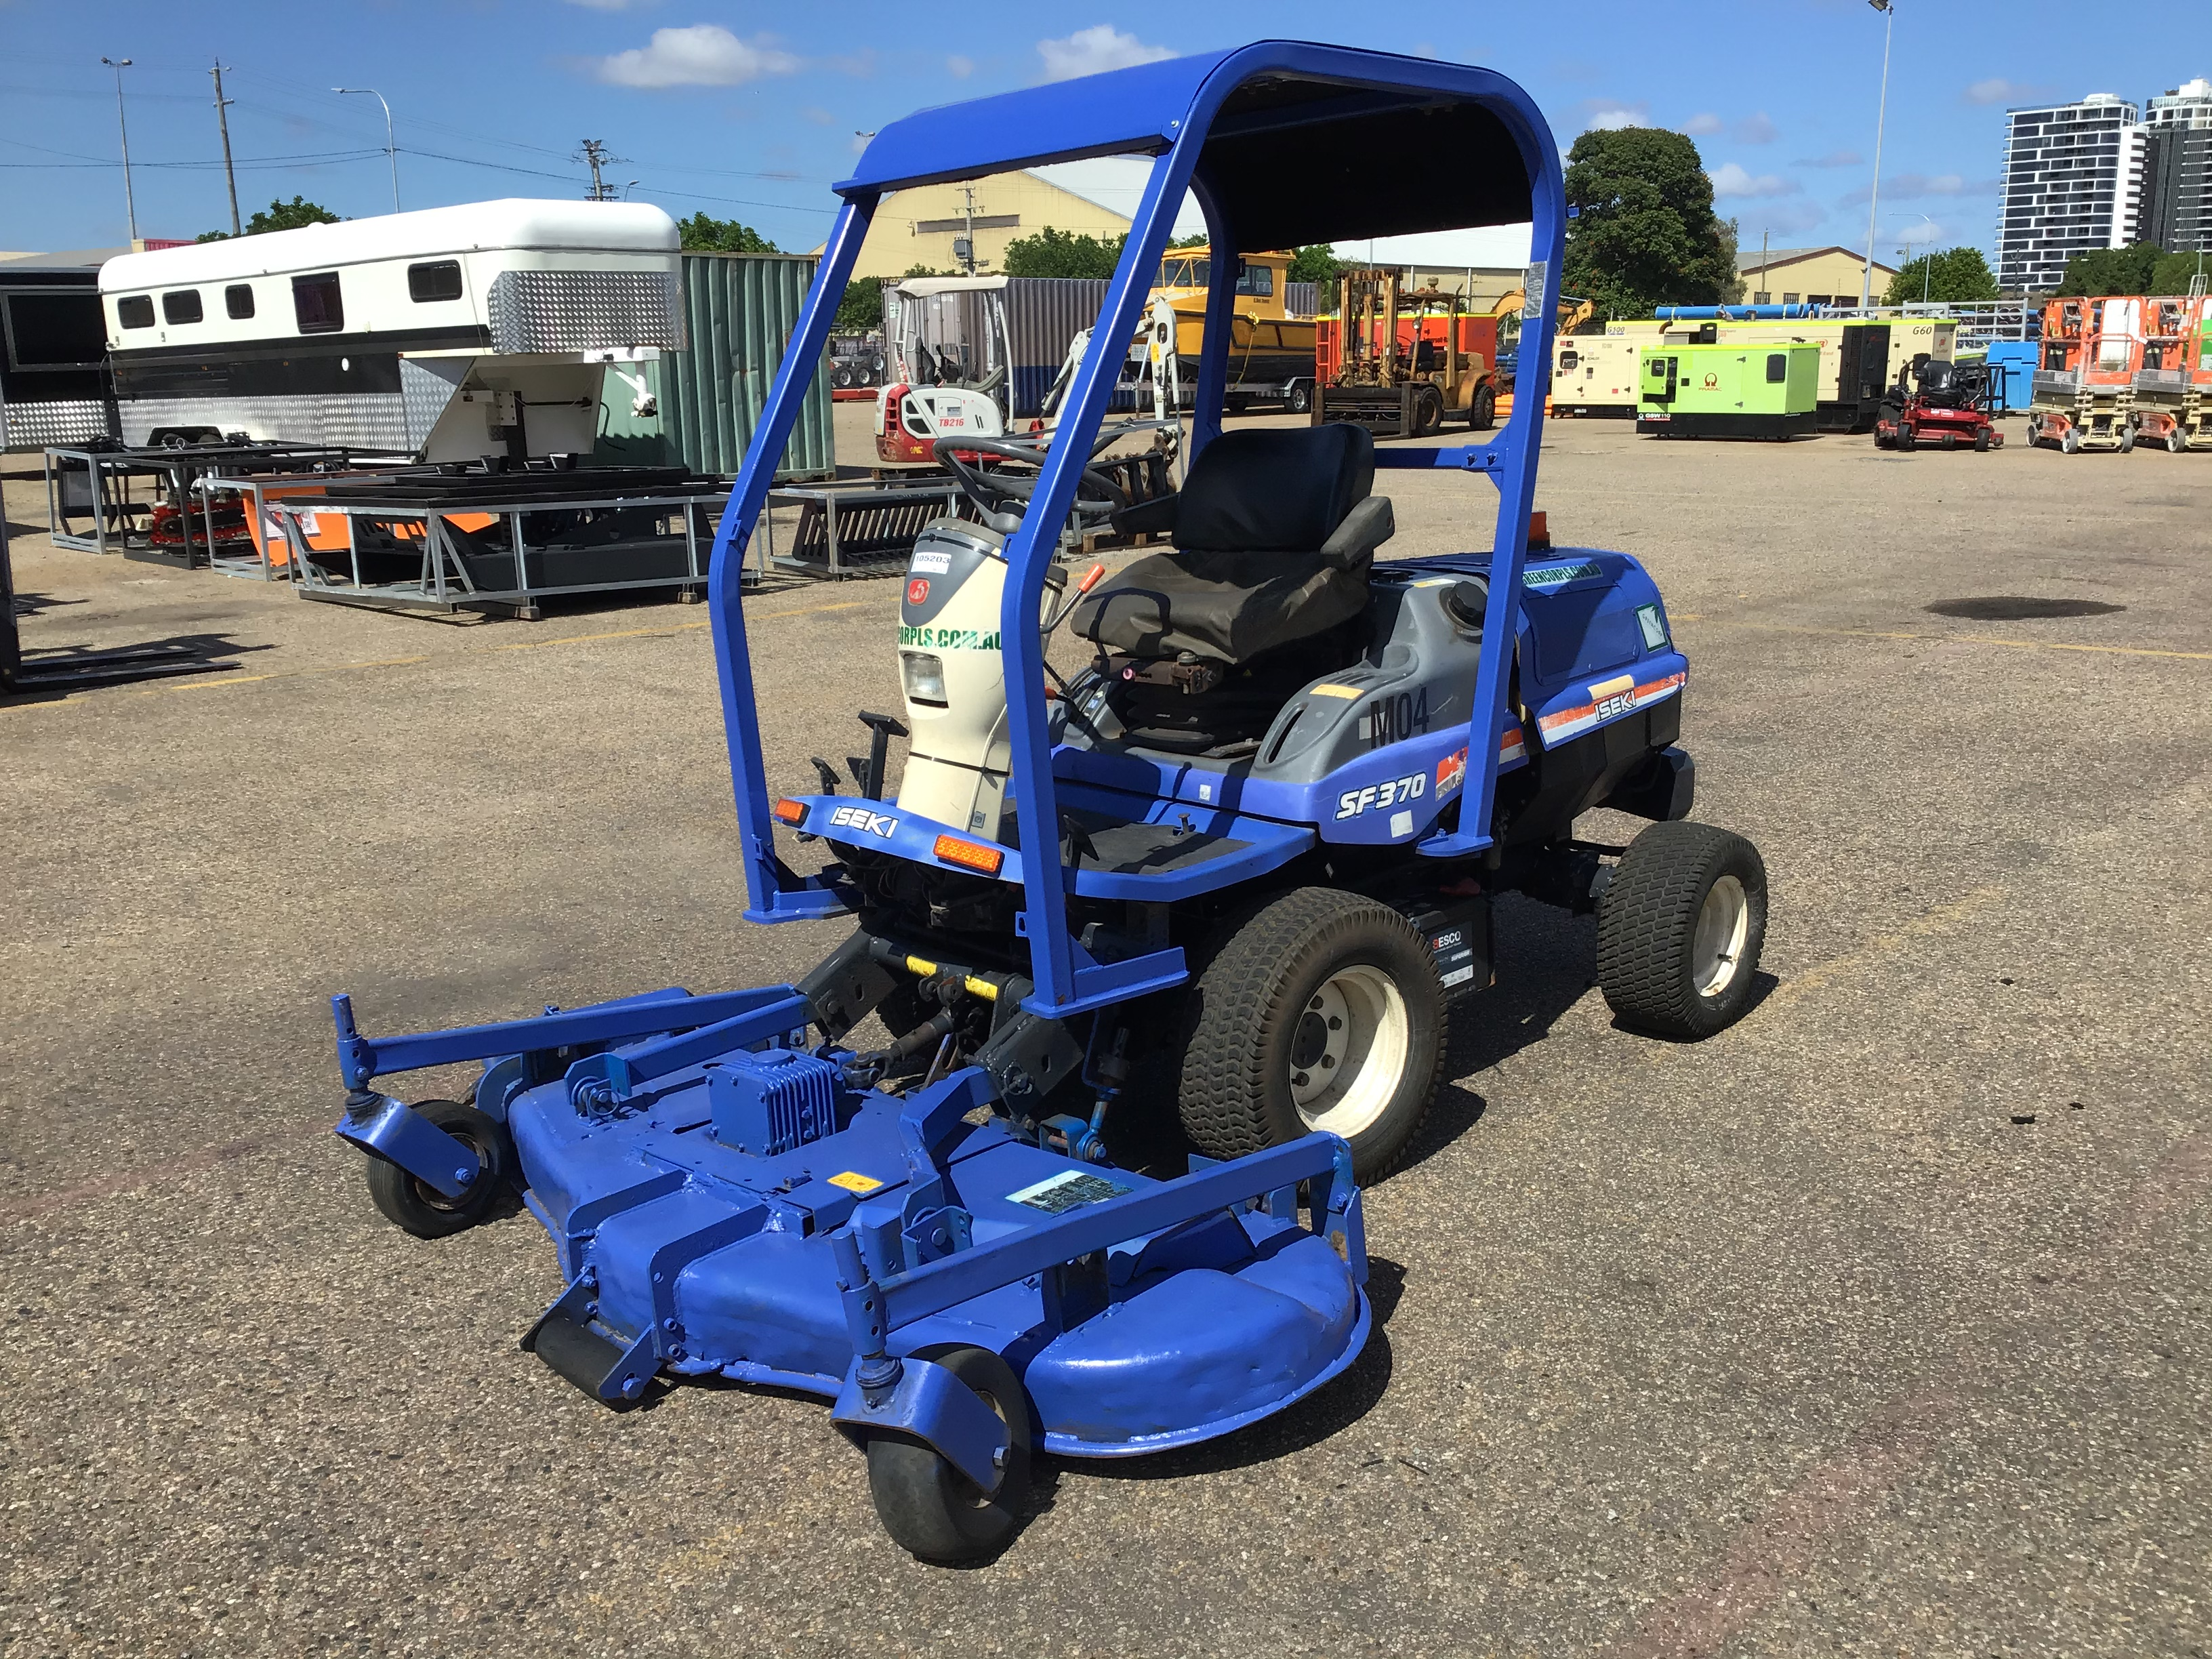 2015 Iseki SF370 Out Front Mower